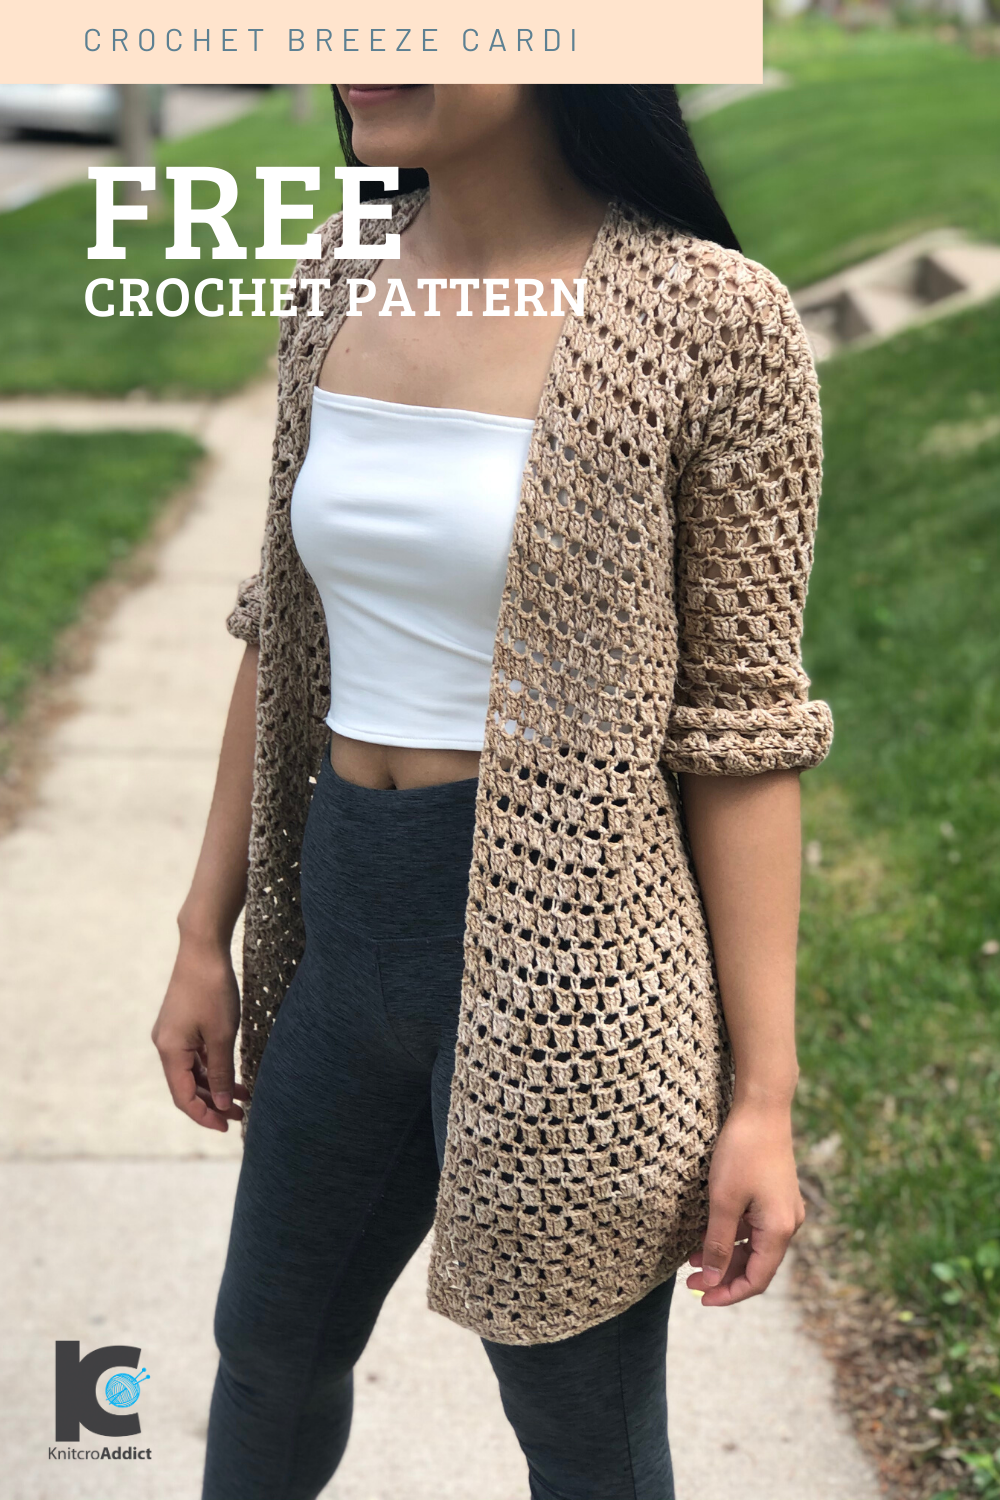 Crochet Breeze Cardigan | Free Crochet Pattern and Video Tutorial XS-XXL